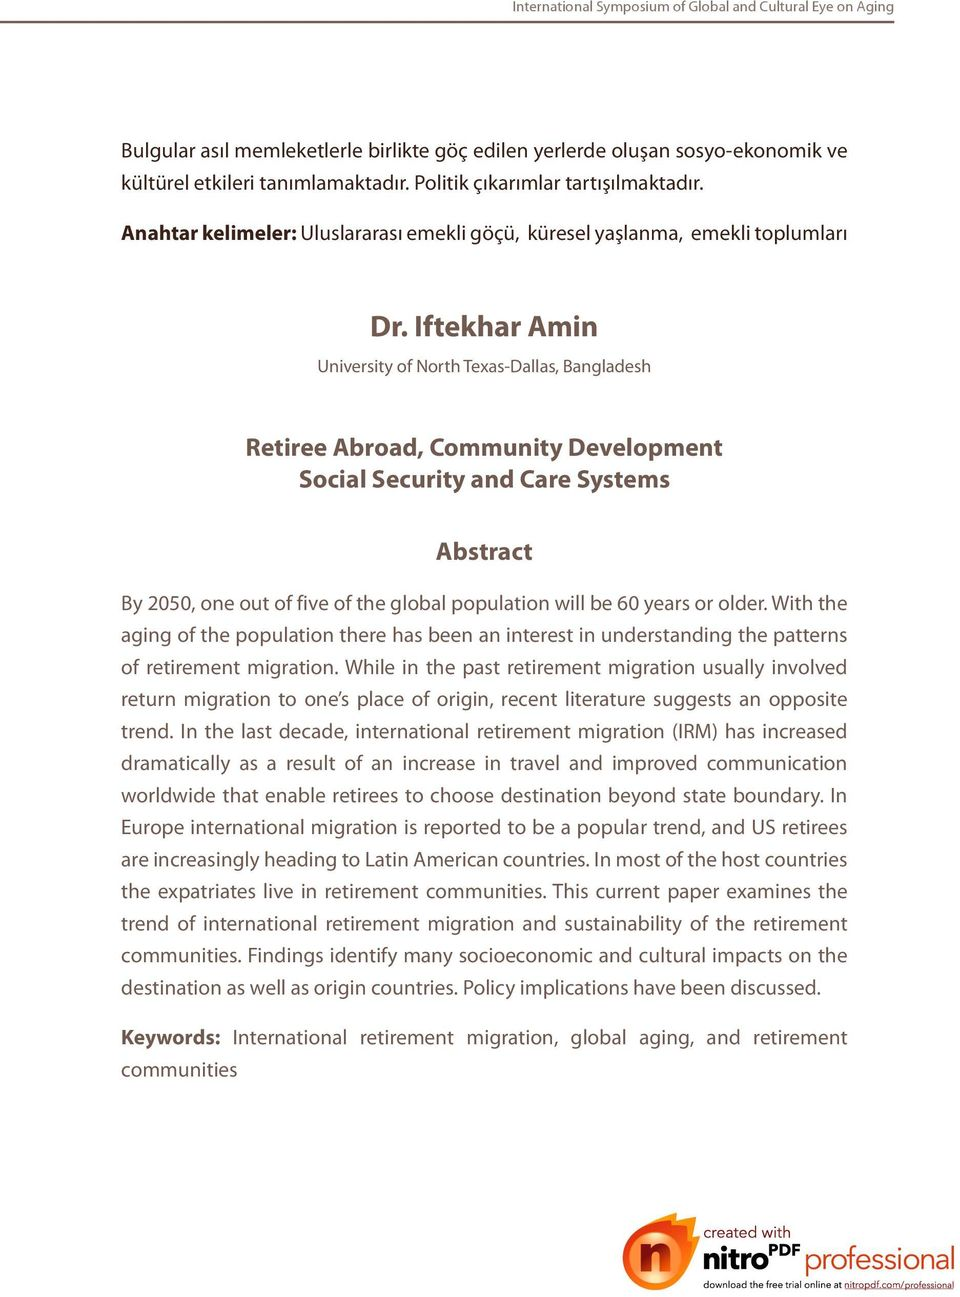 Iftekhar Amin University of North Texas-Dallas, Bangladesh Retiree Abroad, Community Development Social Security and Care Systems Abstract By 2050, one out of five of the global population will be 60